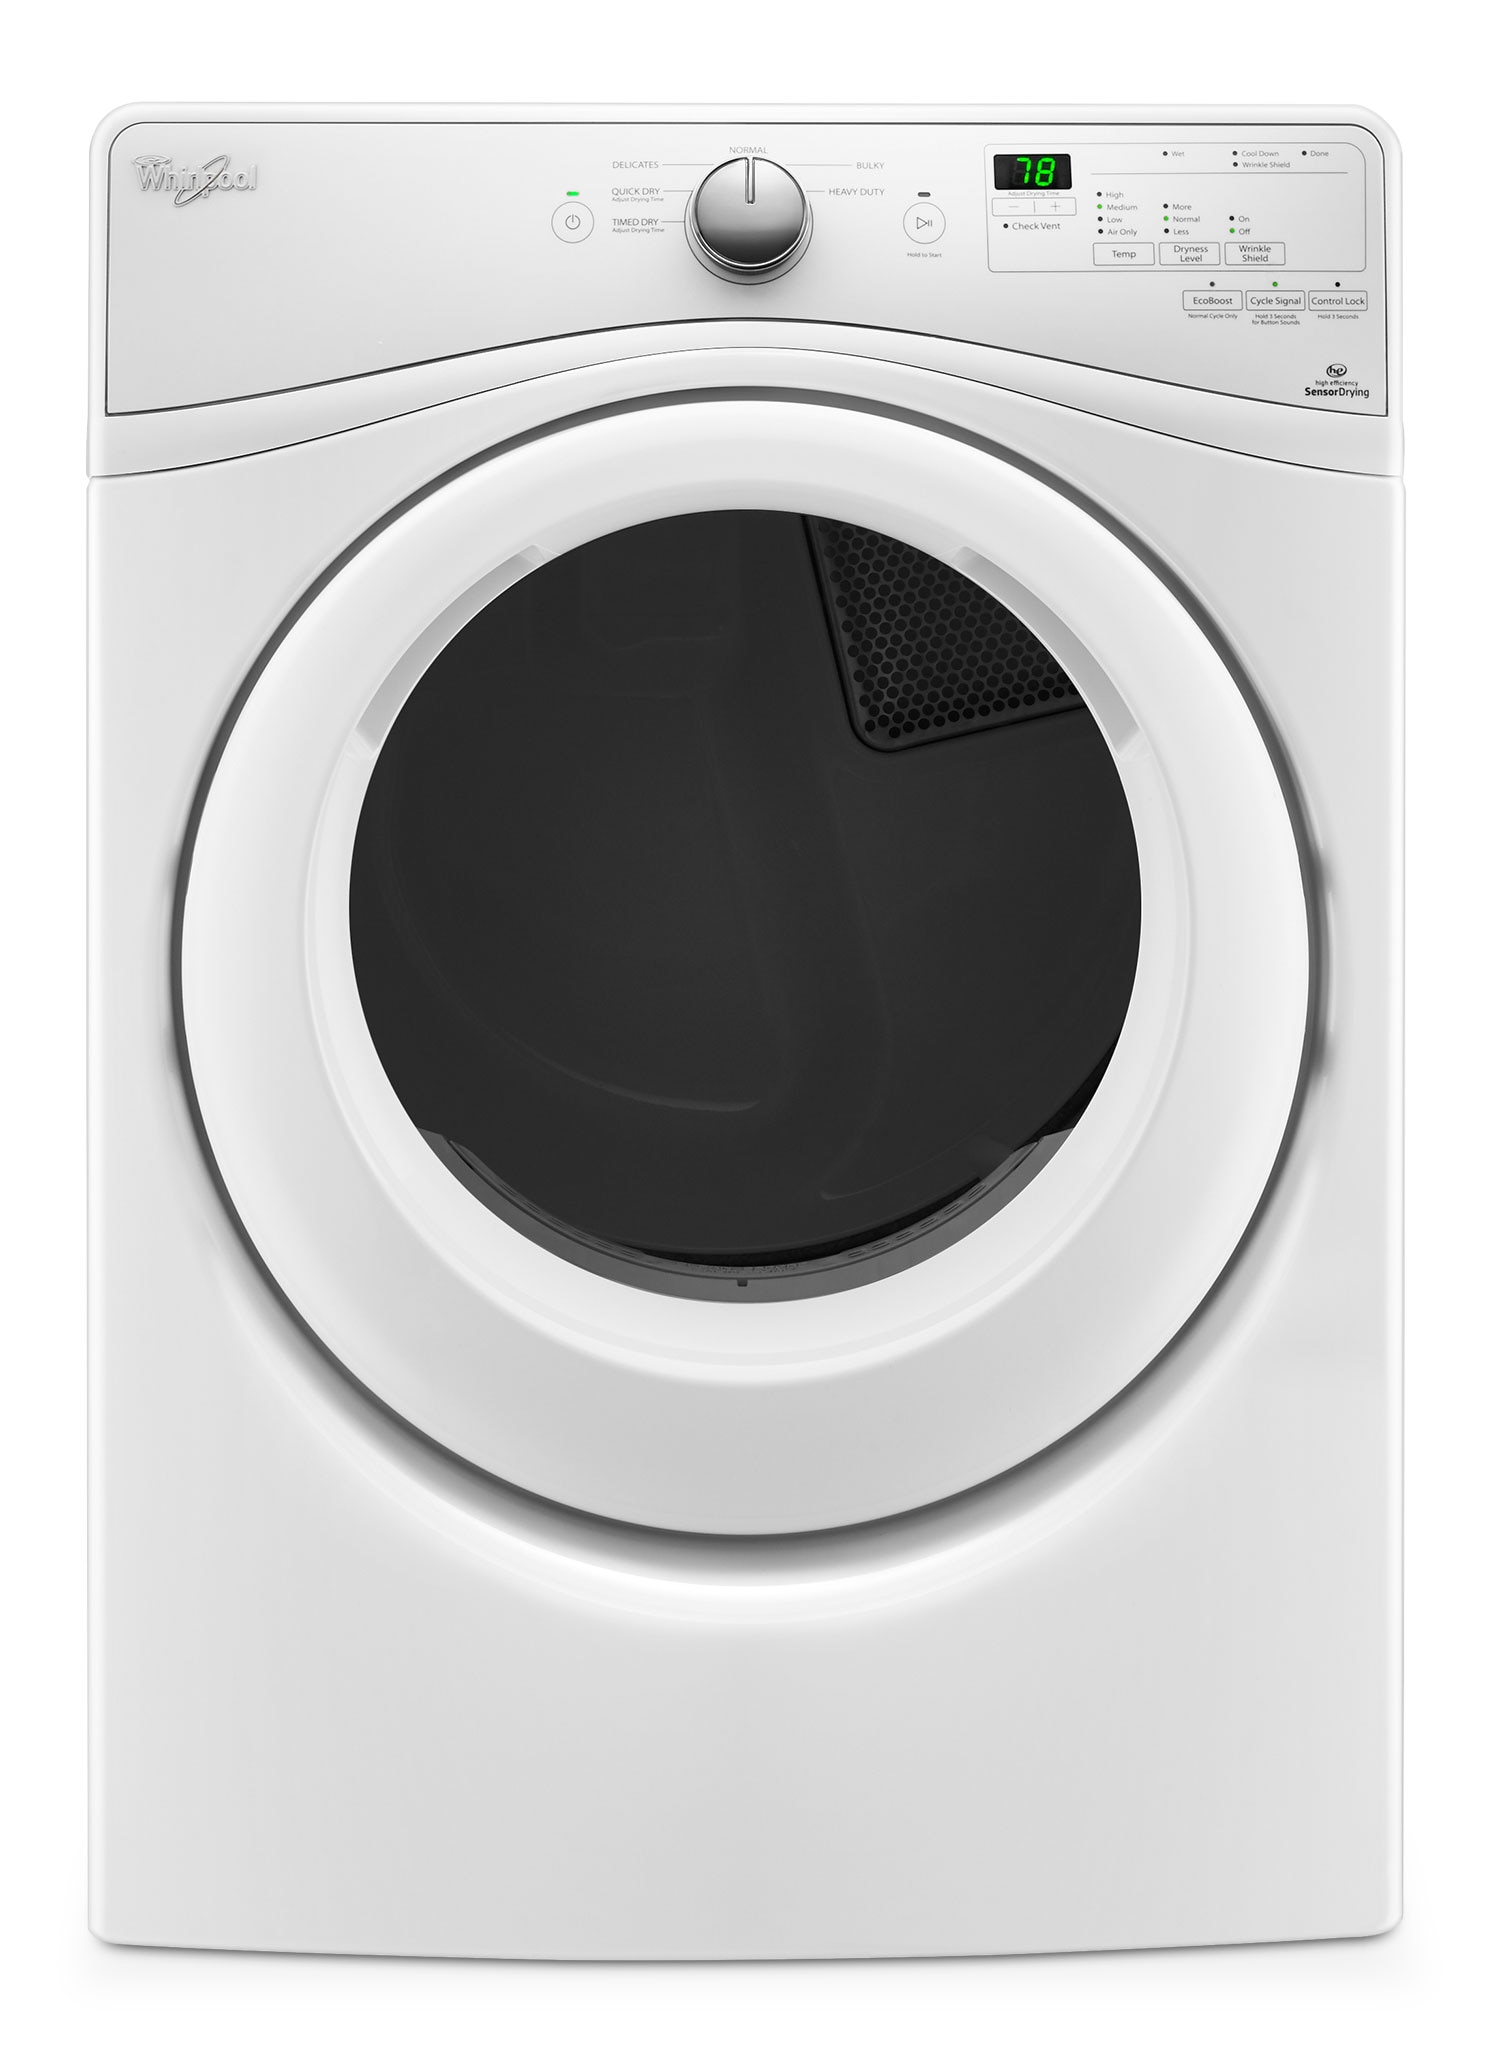 Whirlpool 7.4 Cu. Ft. Electric Dryer – YWED75HEFW